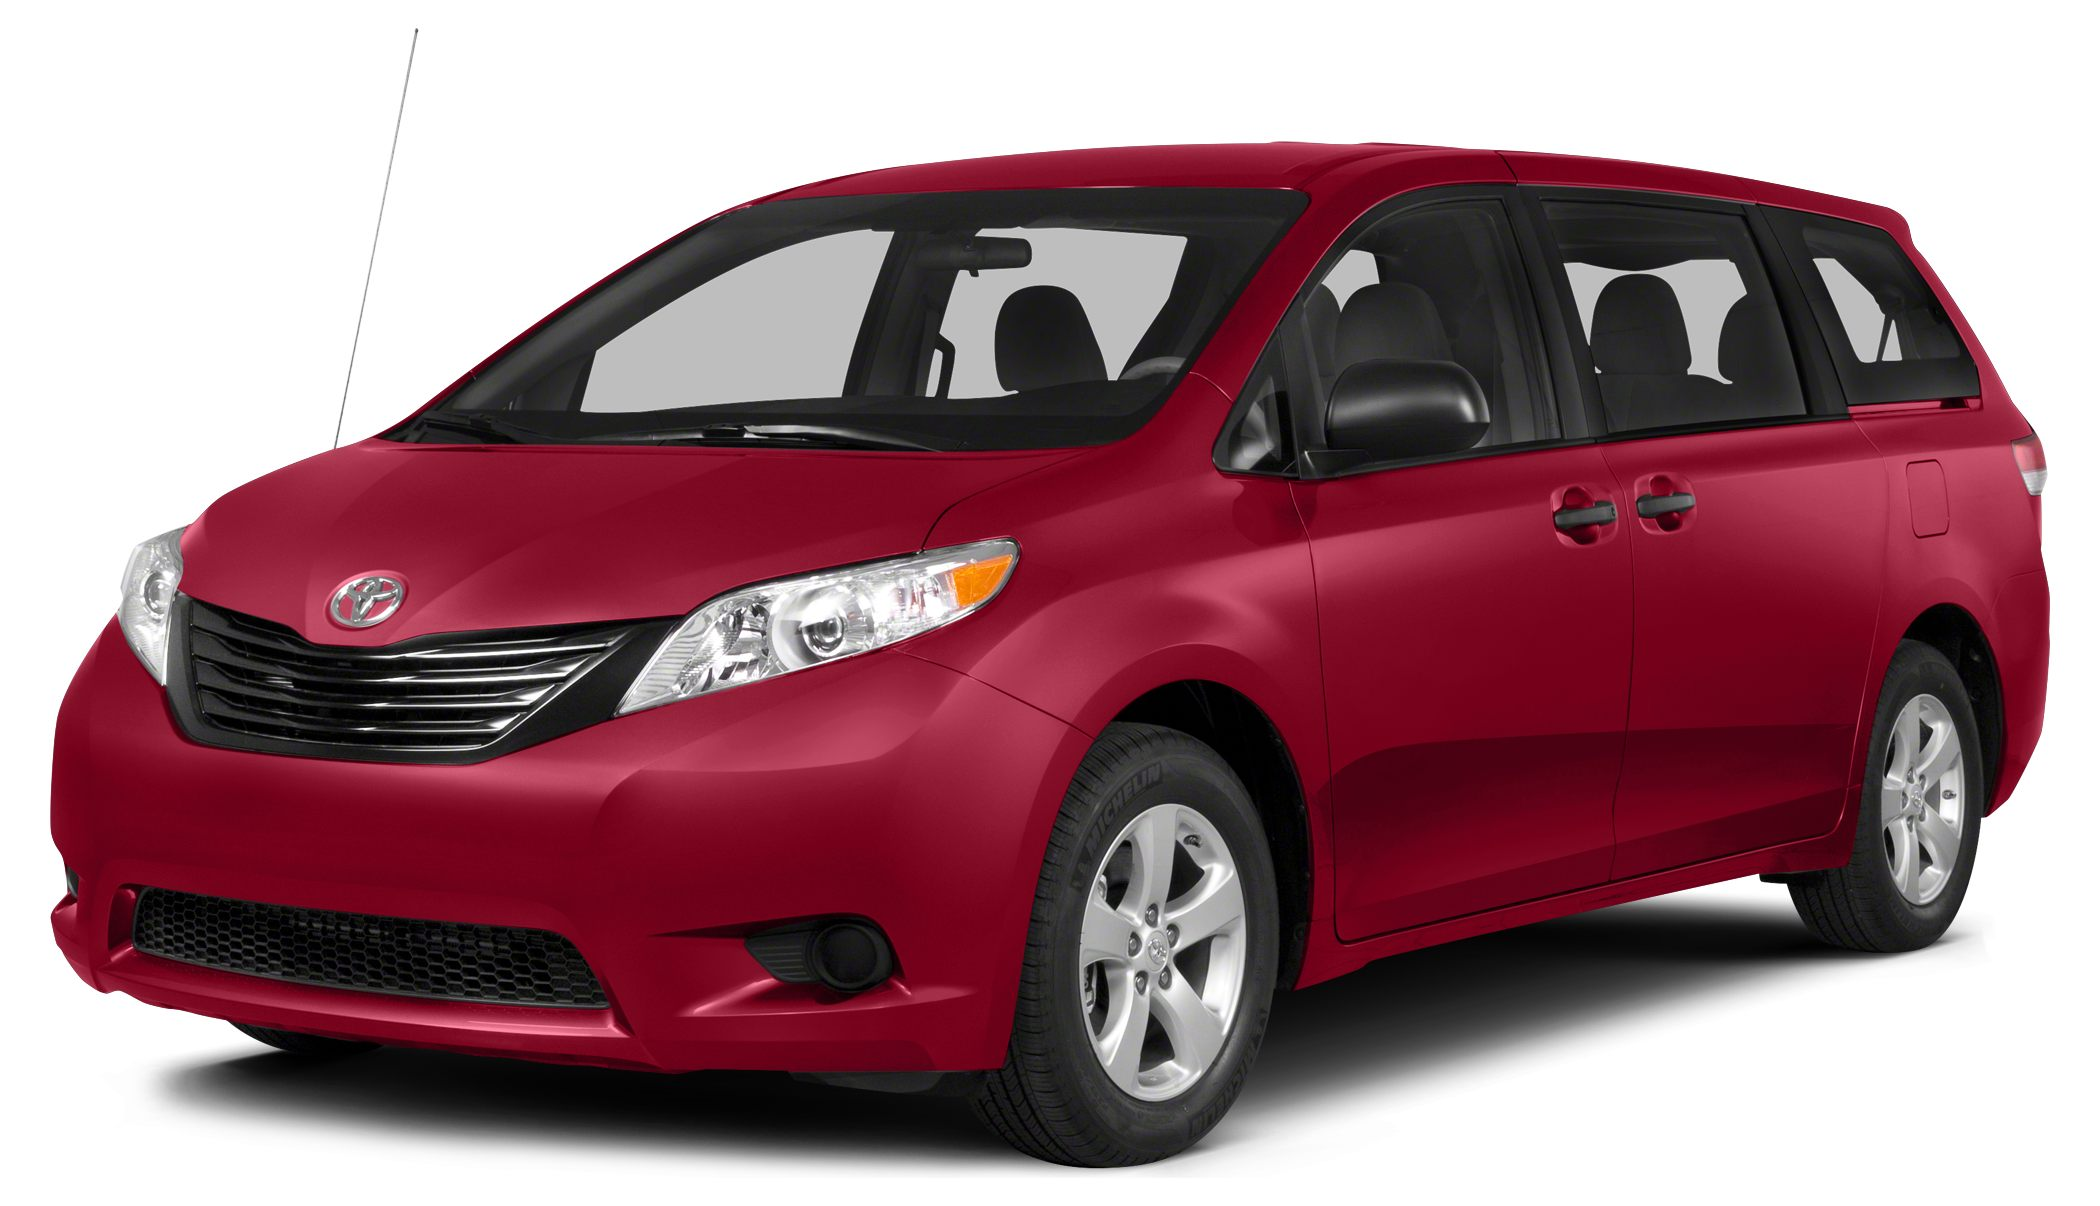 2014 Toyota Sienna LE 8 Passenger CARFAX 1-Owner FUEL EFFICIENT 25 MPG Hwy18 MPG City 3rd Row S